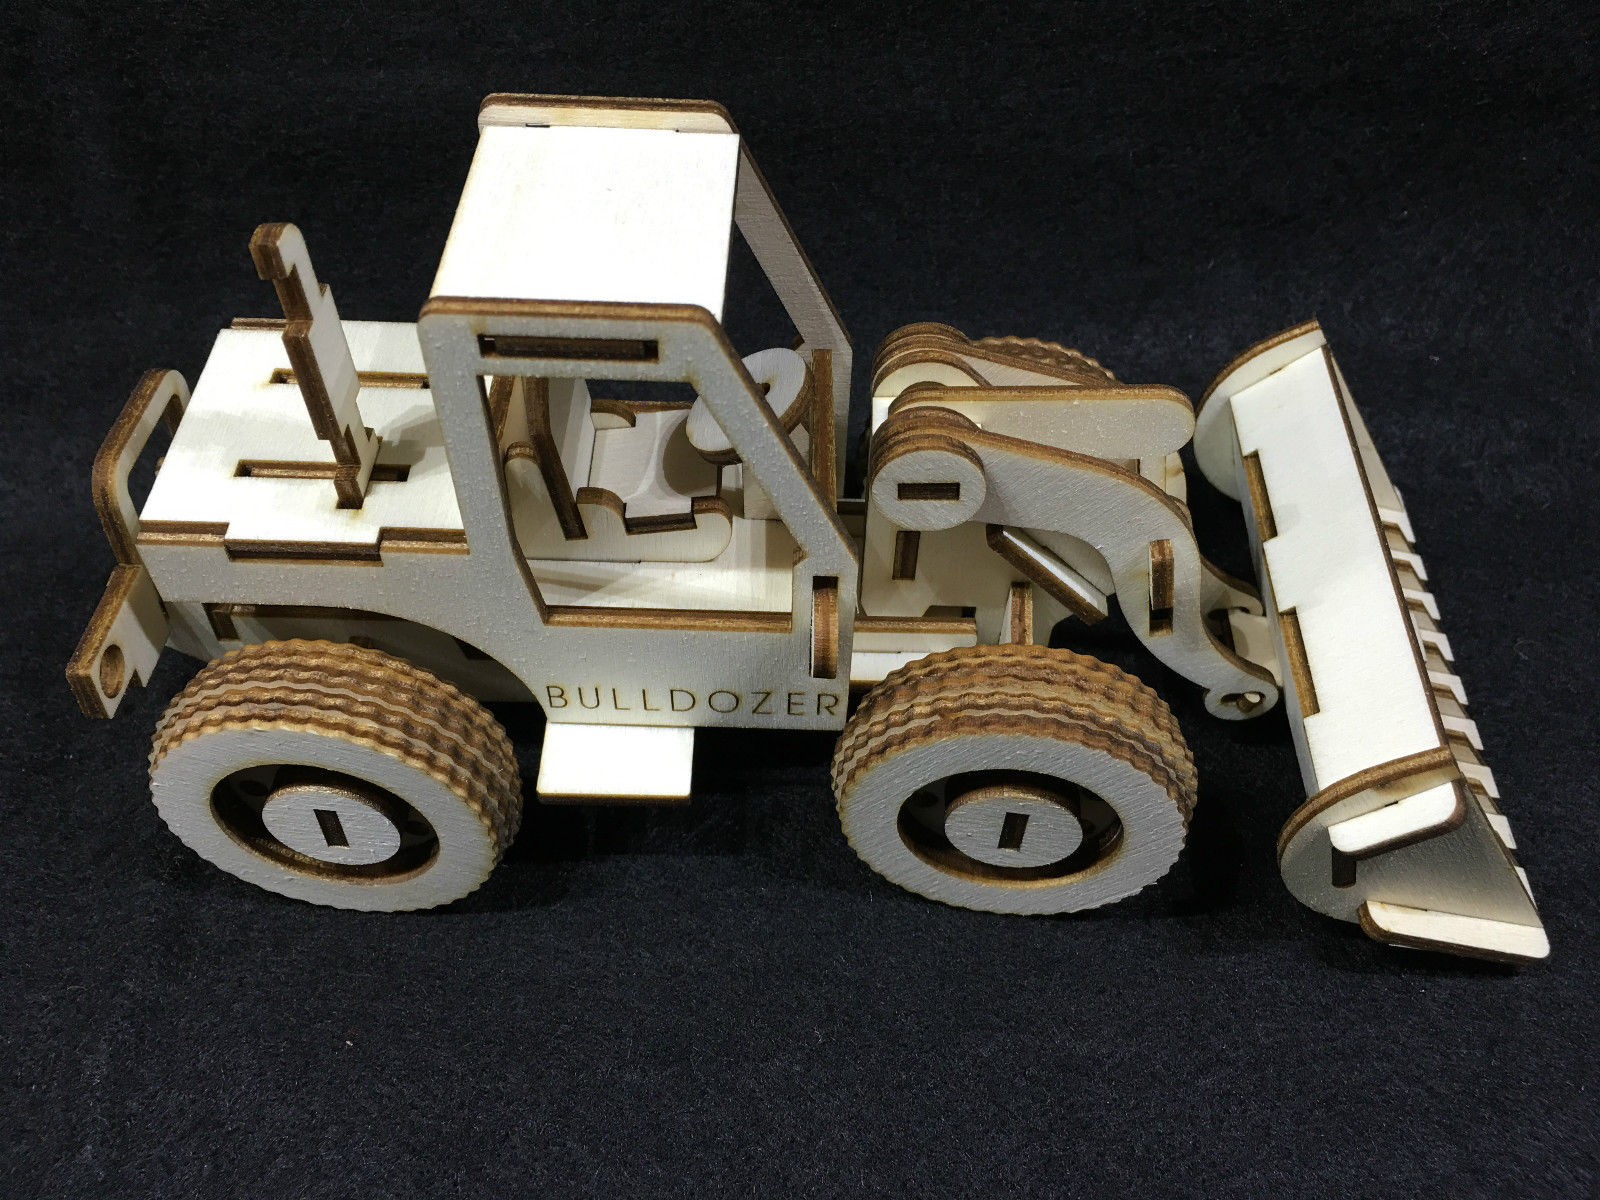 Bulldozer Laser Cut Wooden 3D Model Puzzle Kit Free Vector Cdr